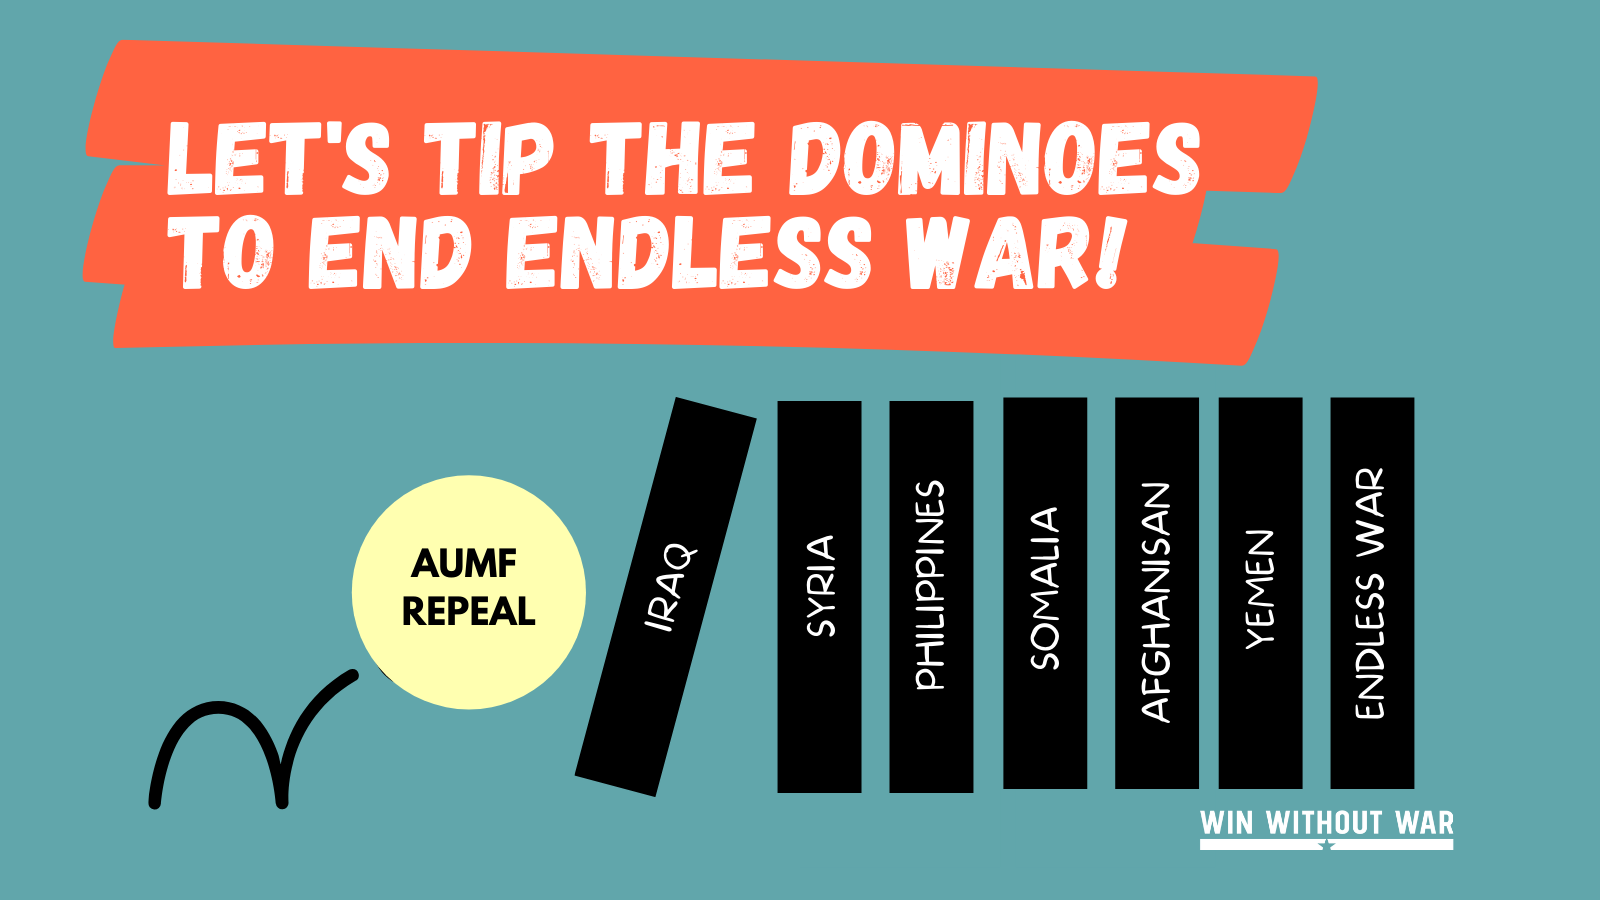 Let's tip the dominoes to end endless war and repeal the 2002 AUMF!